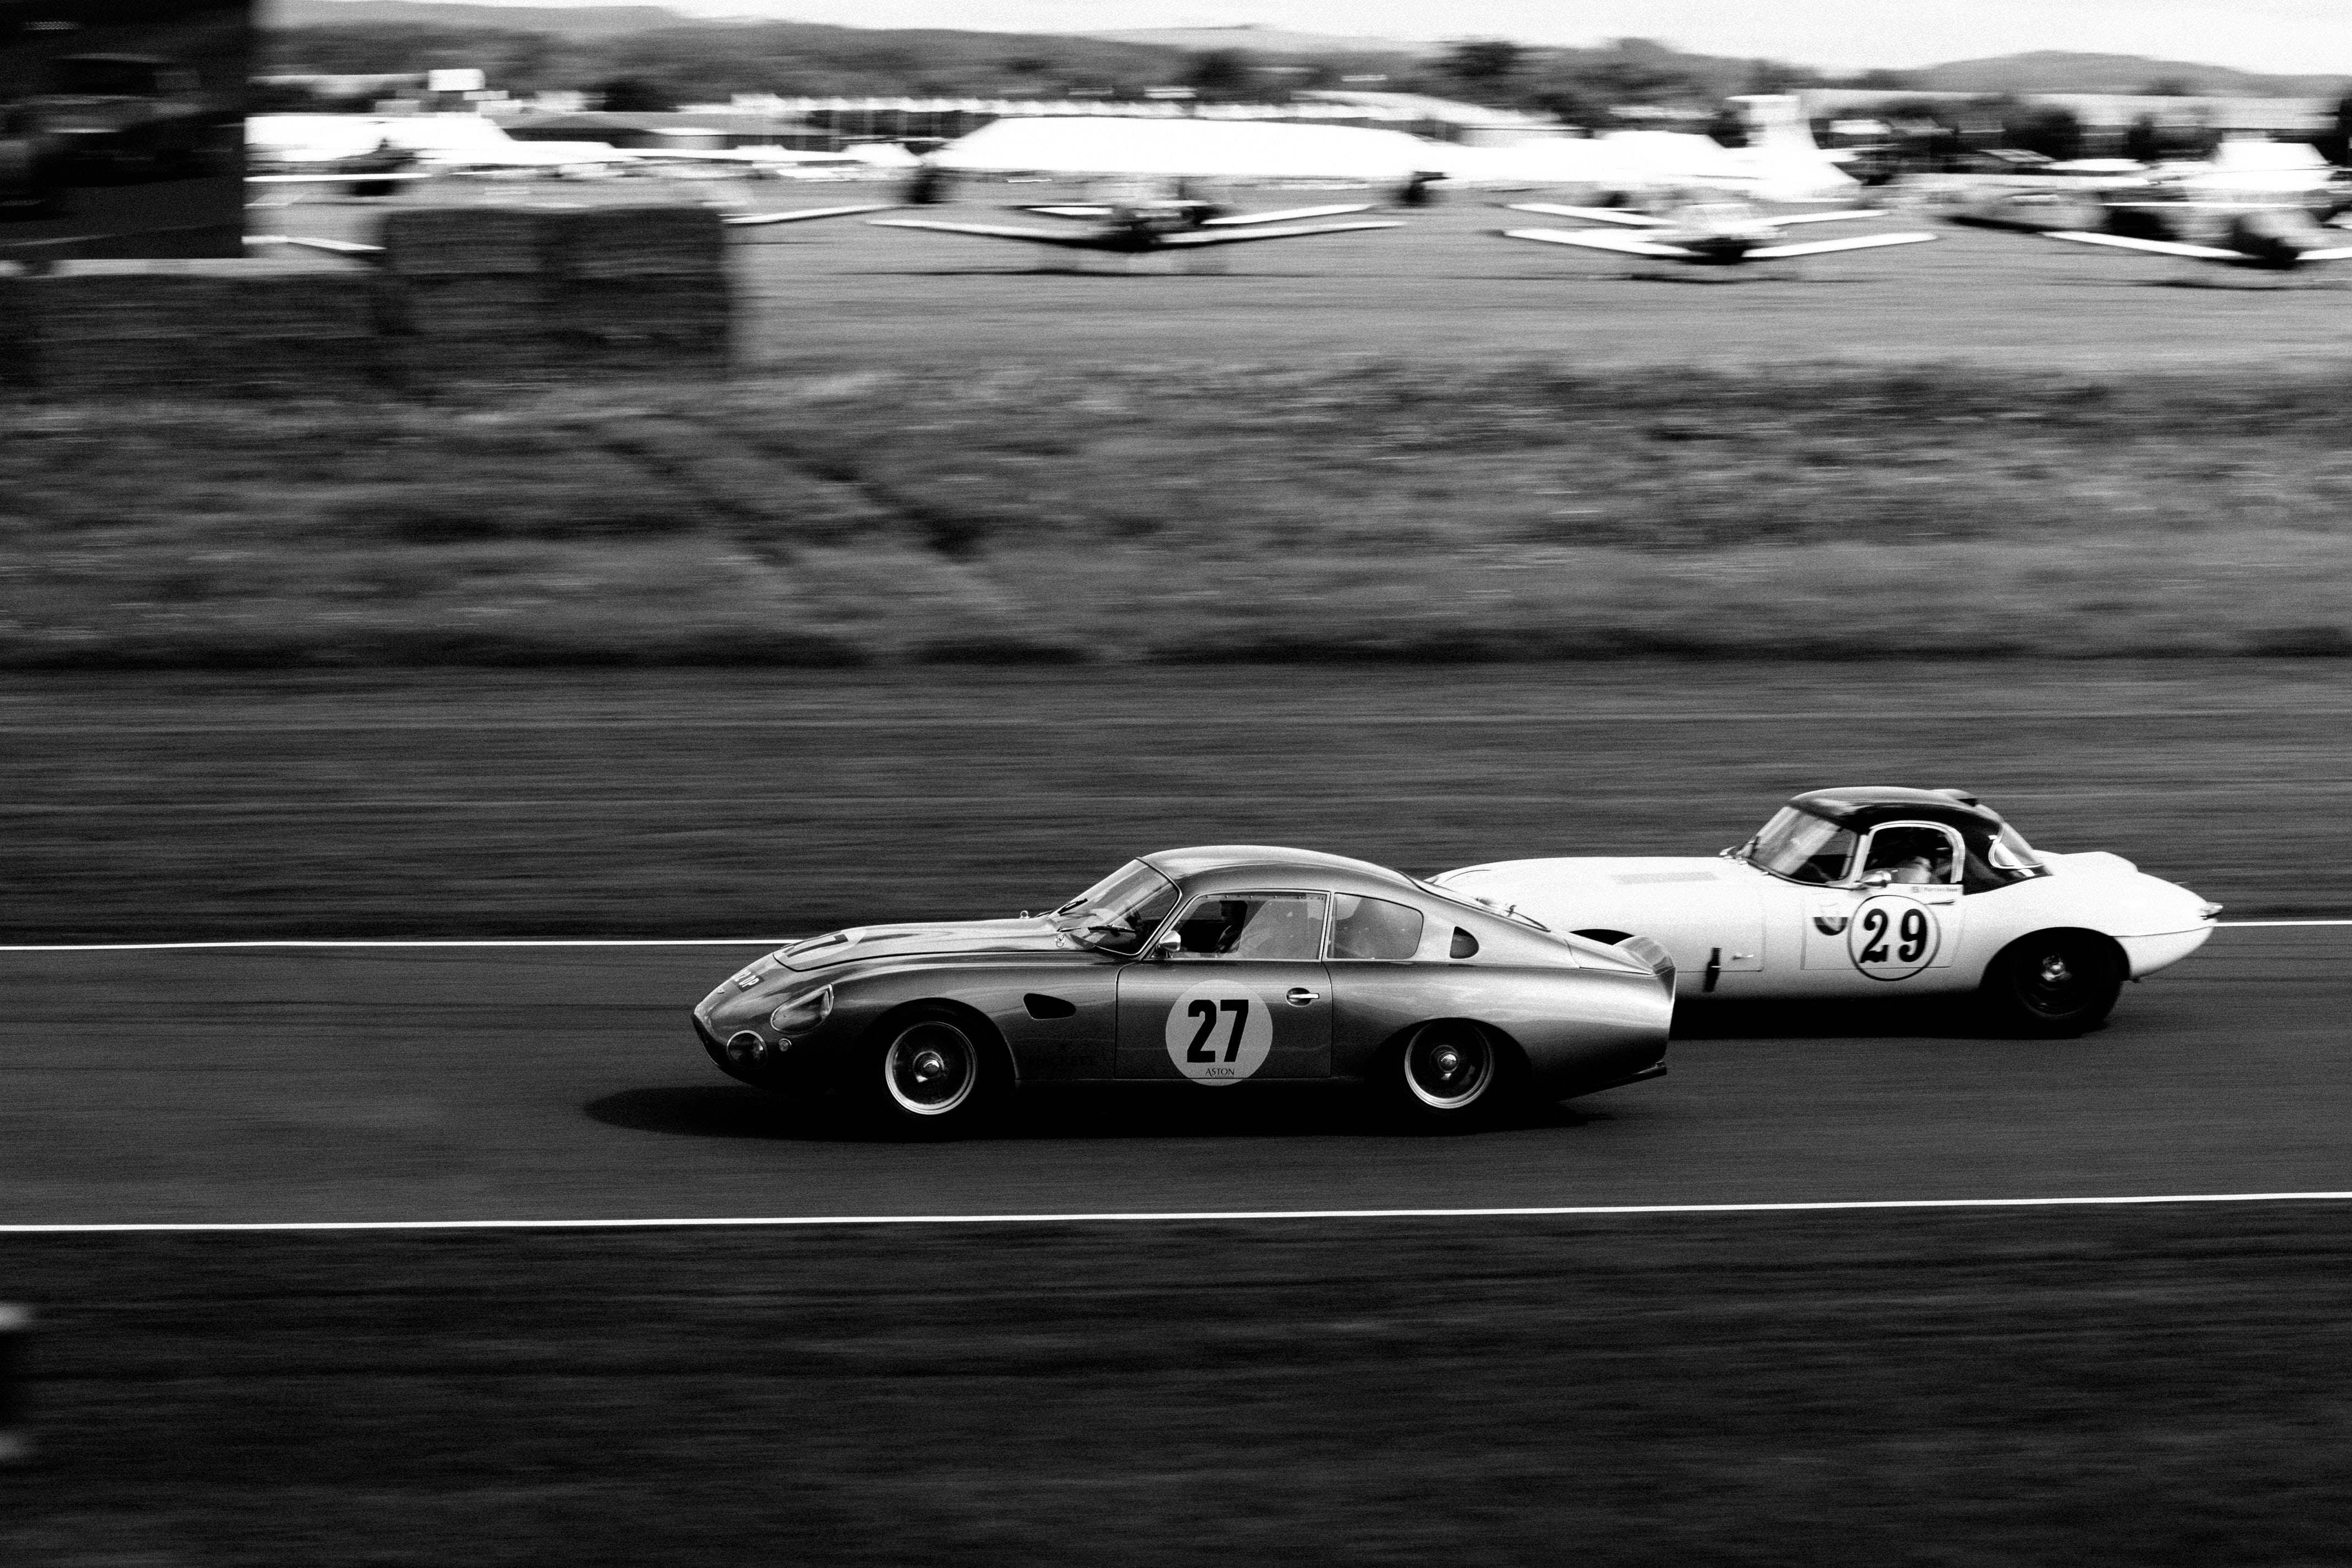 two vintage race cars racing